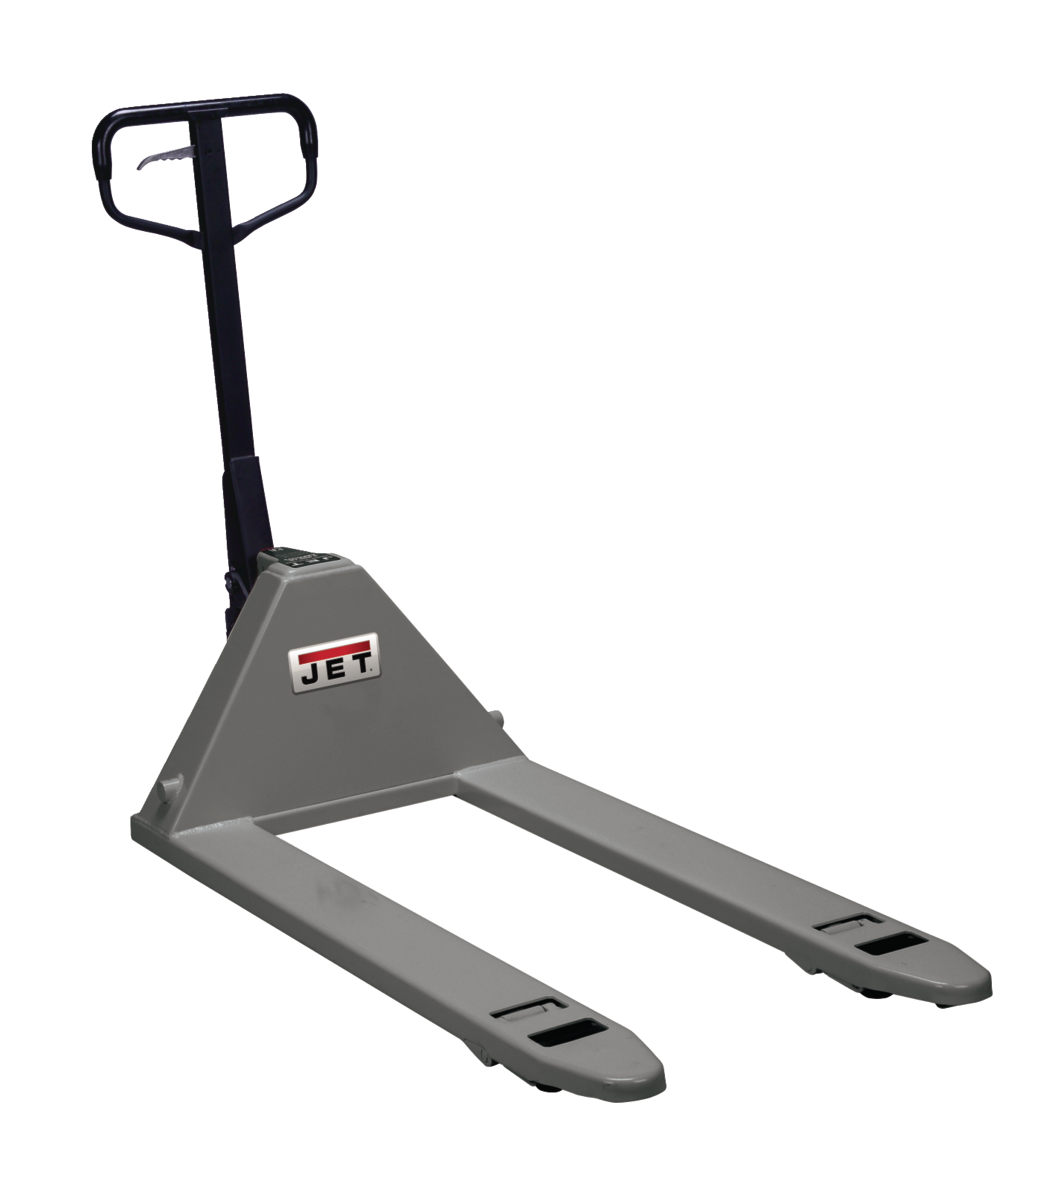 JTX Series Pallet Trucks